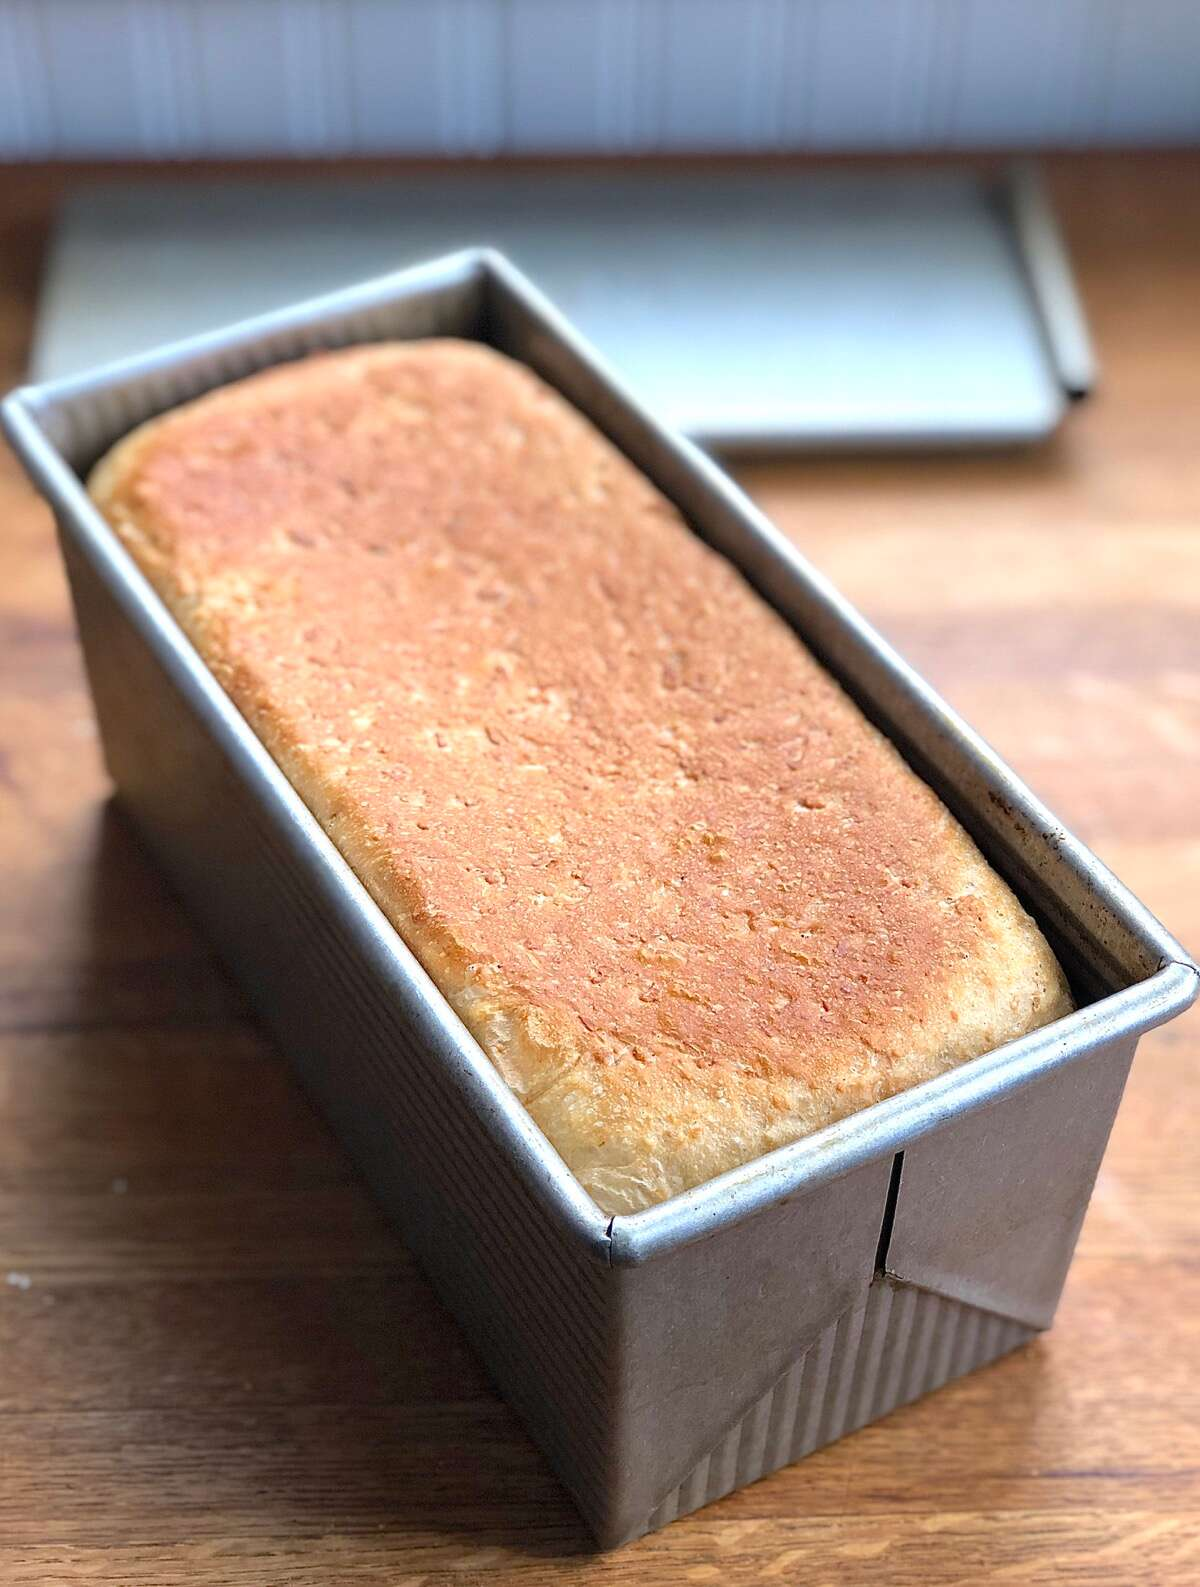 Just-baked oatmeal bread in a pain de mie loaf pan